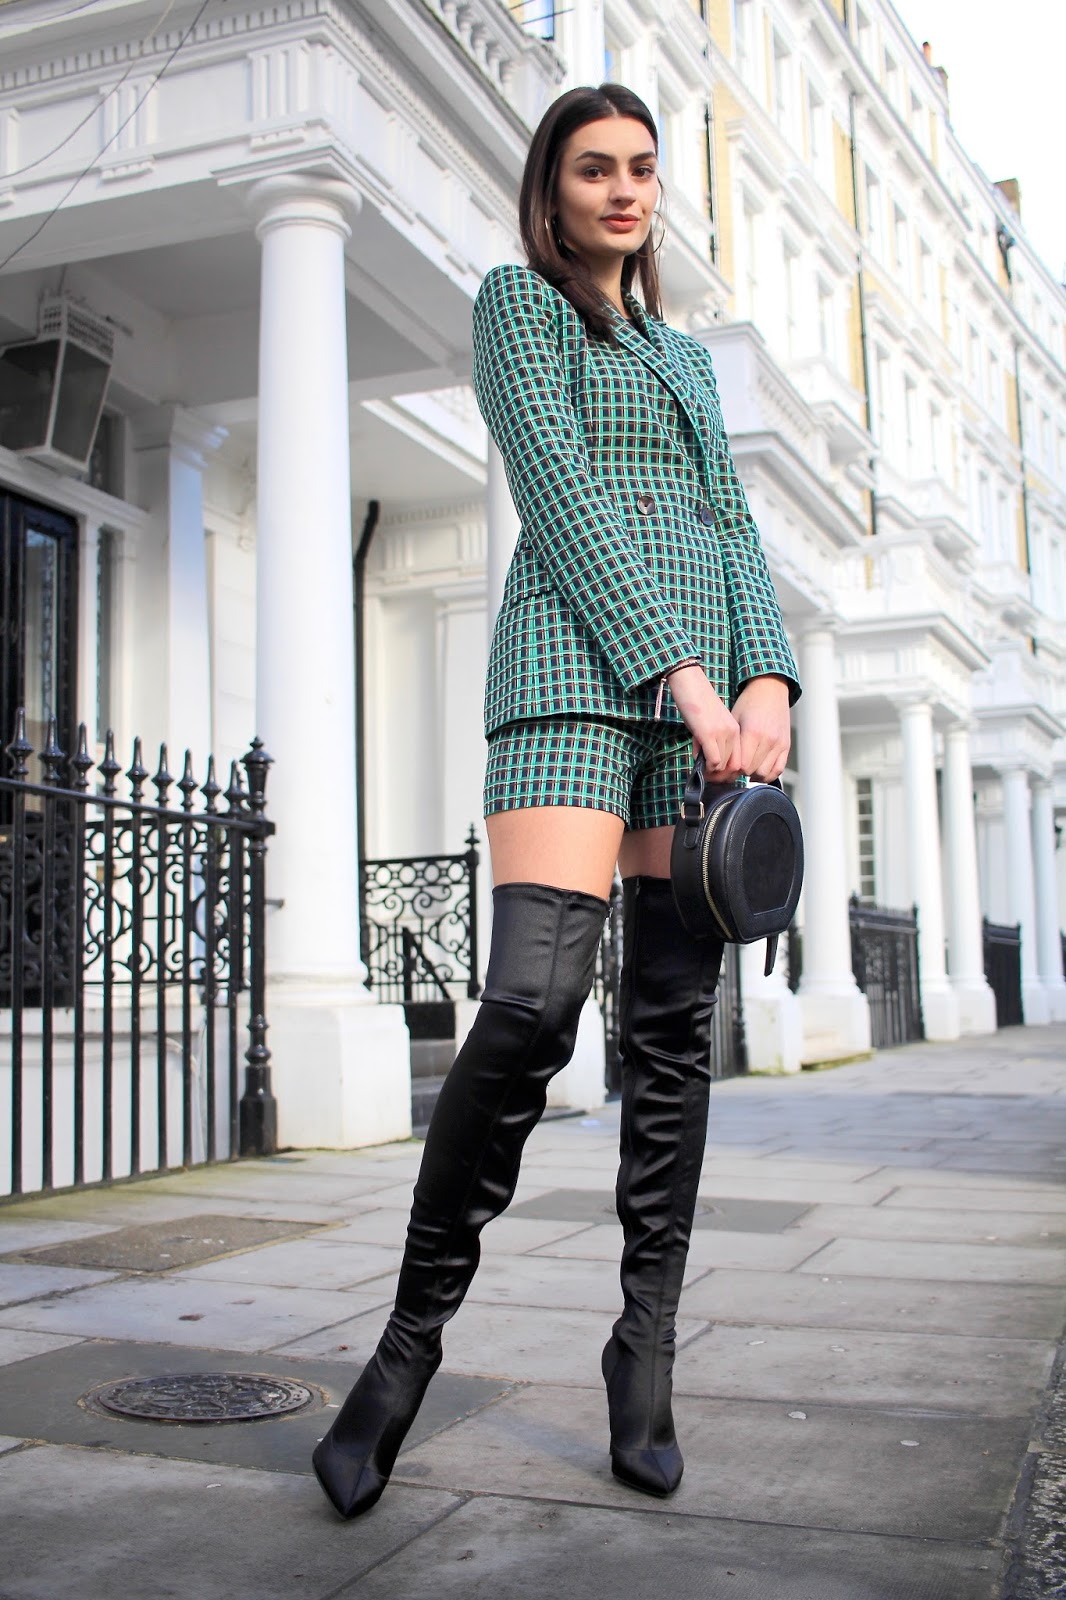 personal style blog peexo london